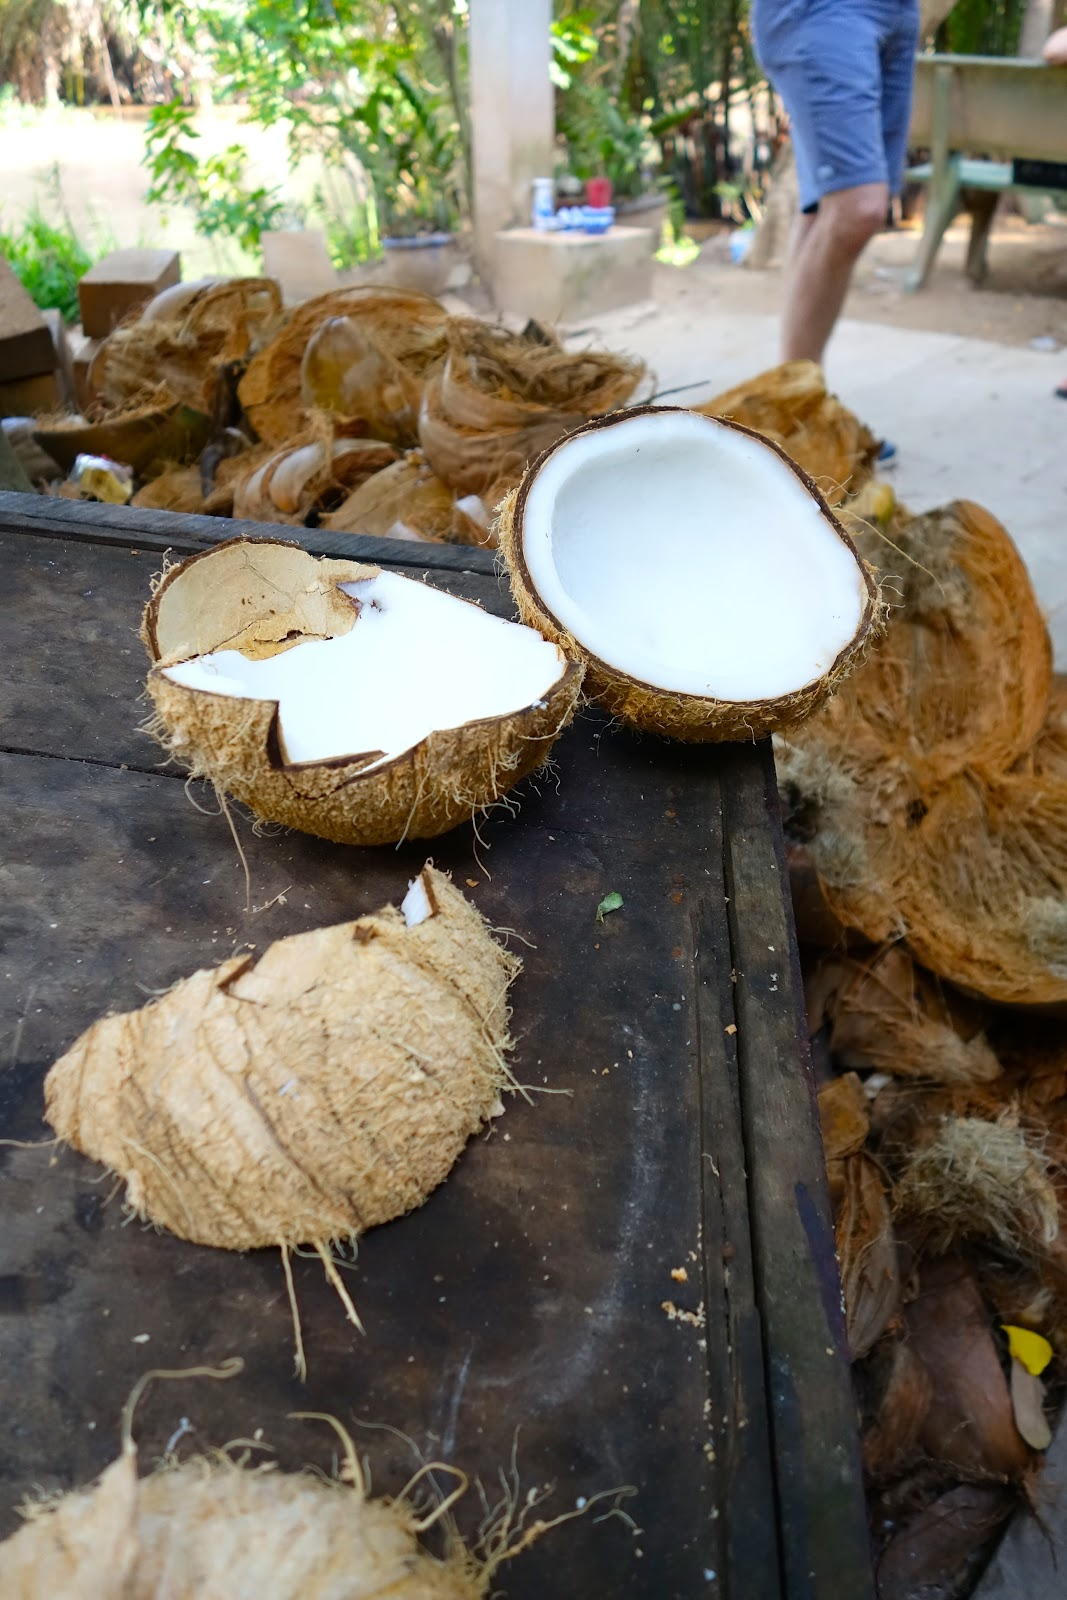 Coconut Candy Factory in Mekong Delta Vietnam 2015